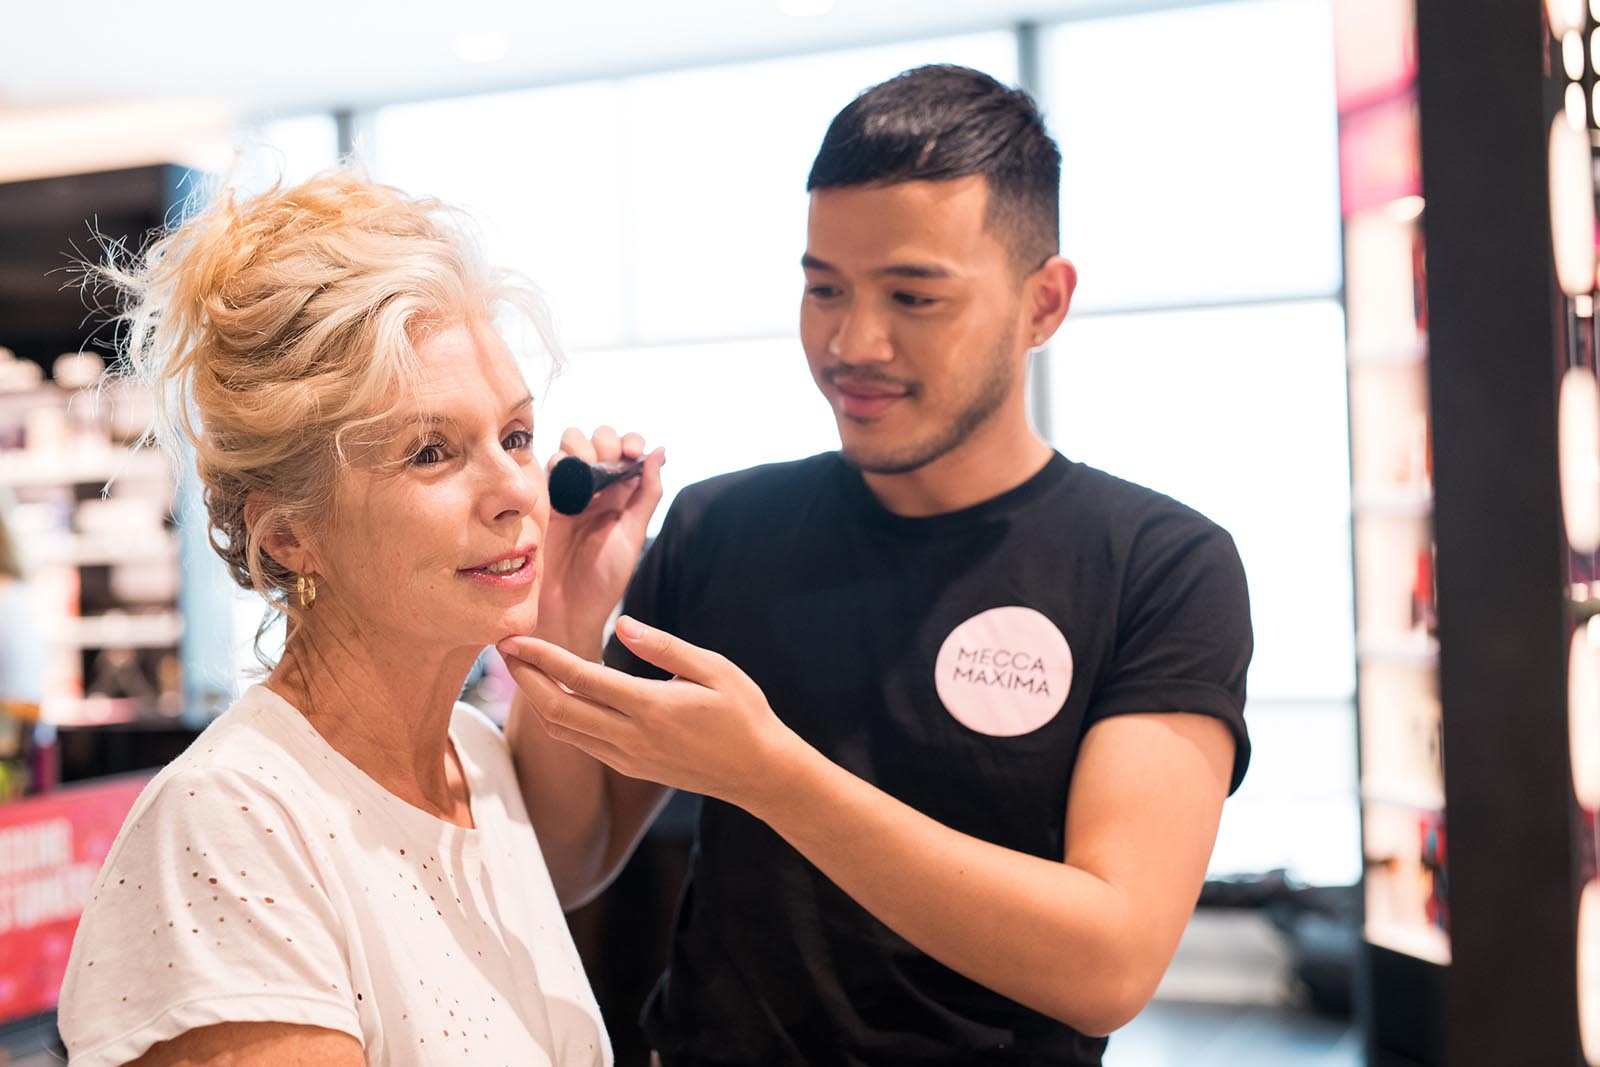 Professional makeup application at Mecca Maxima, Domestic Terminal, Brisbane Airport